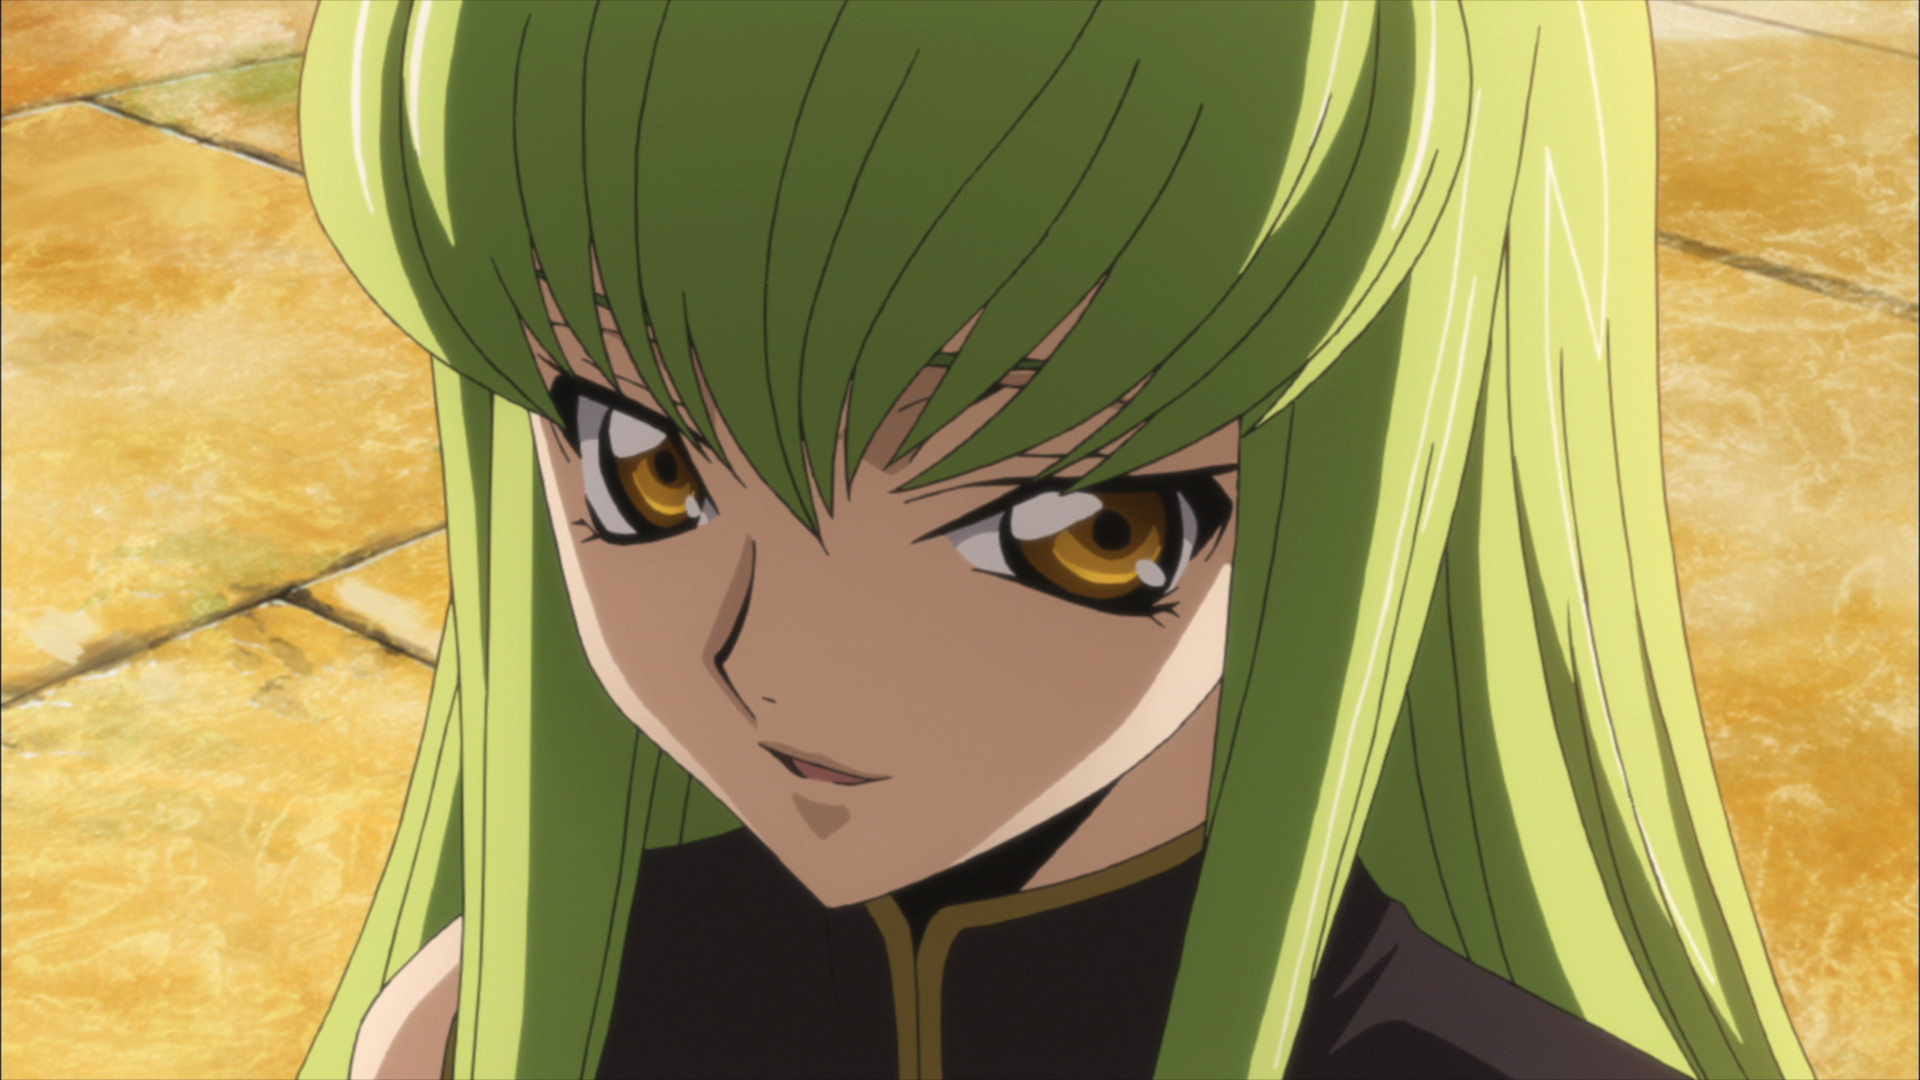 Watch Code Geass Season 2 Episode 40 Sub & Dub | Anime Uncut